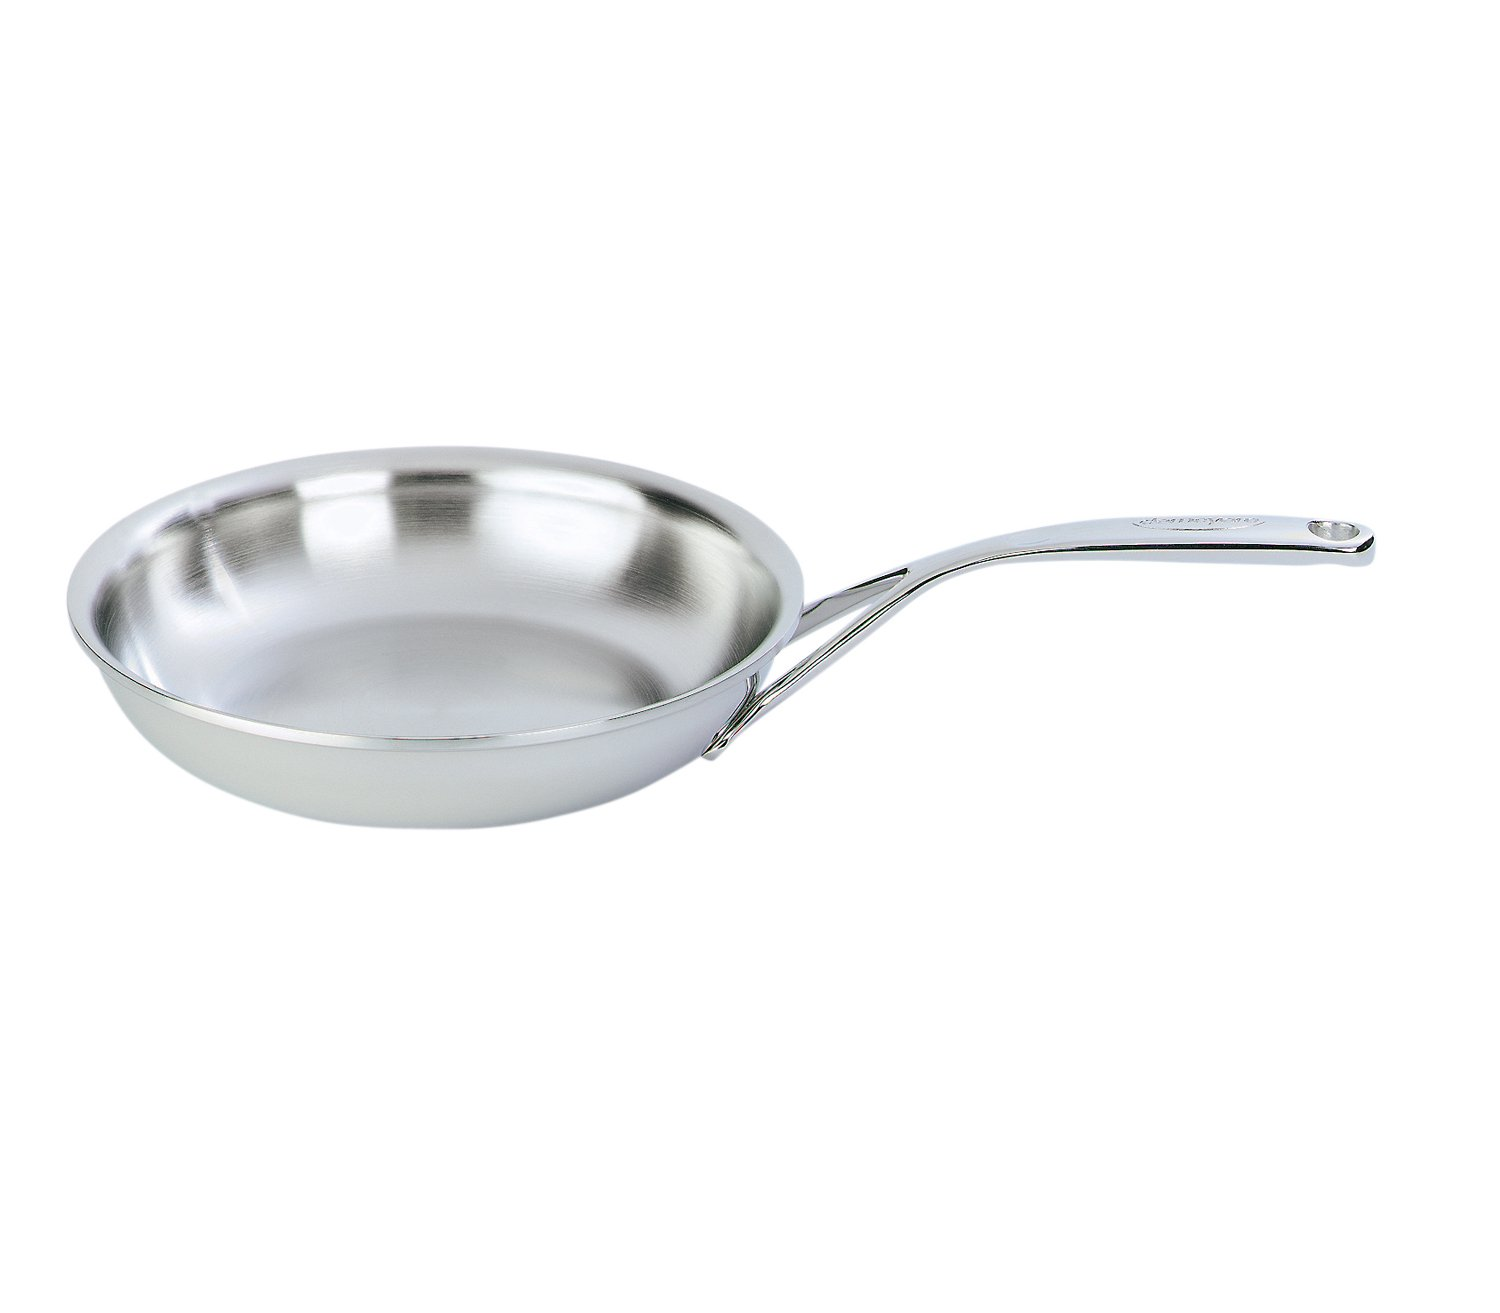 Frying Pans For Induction Hobs Induction Pans